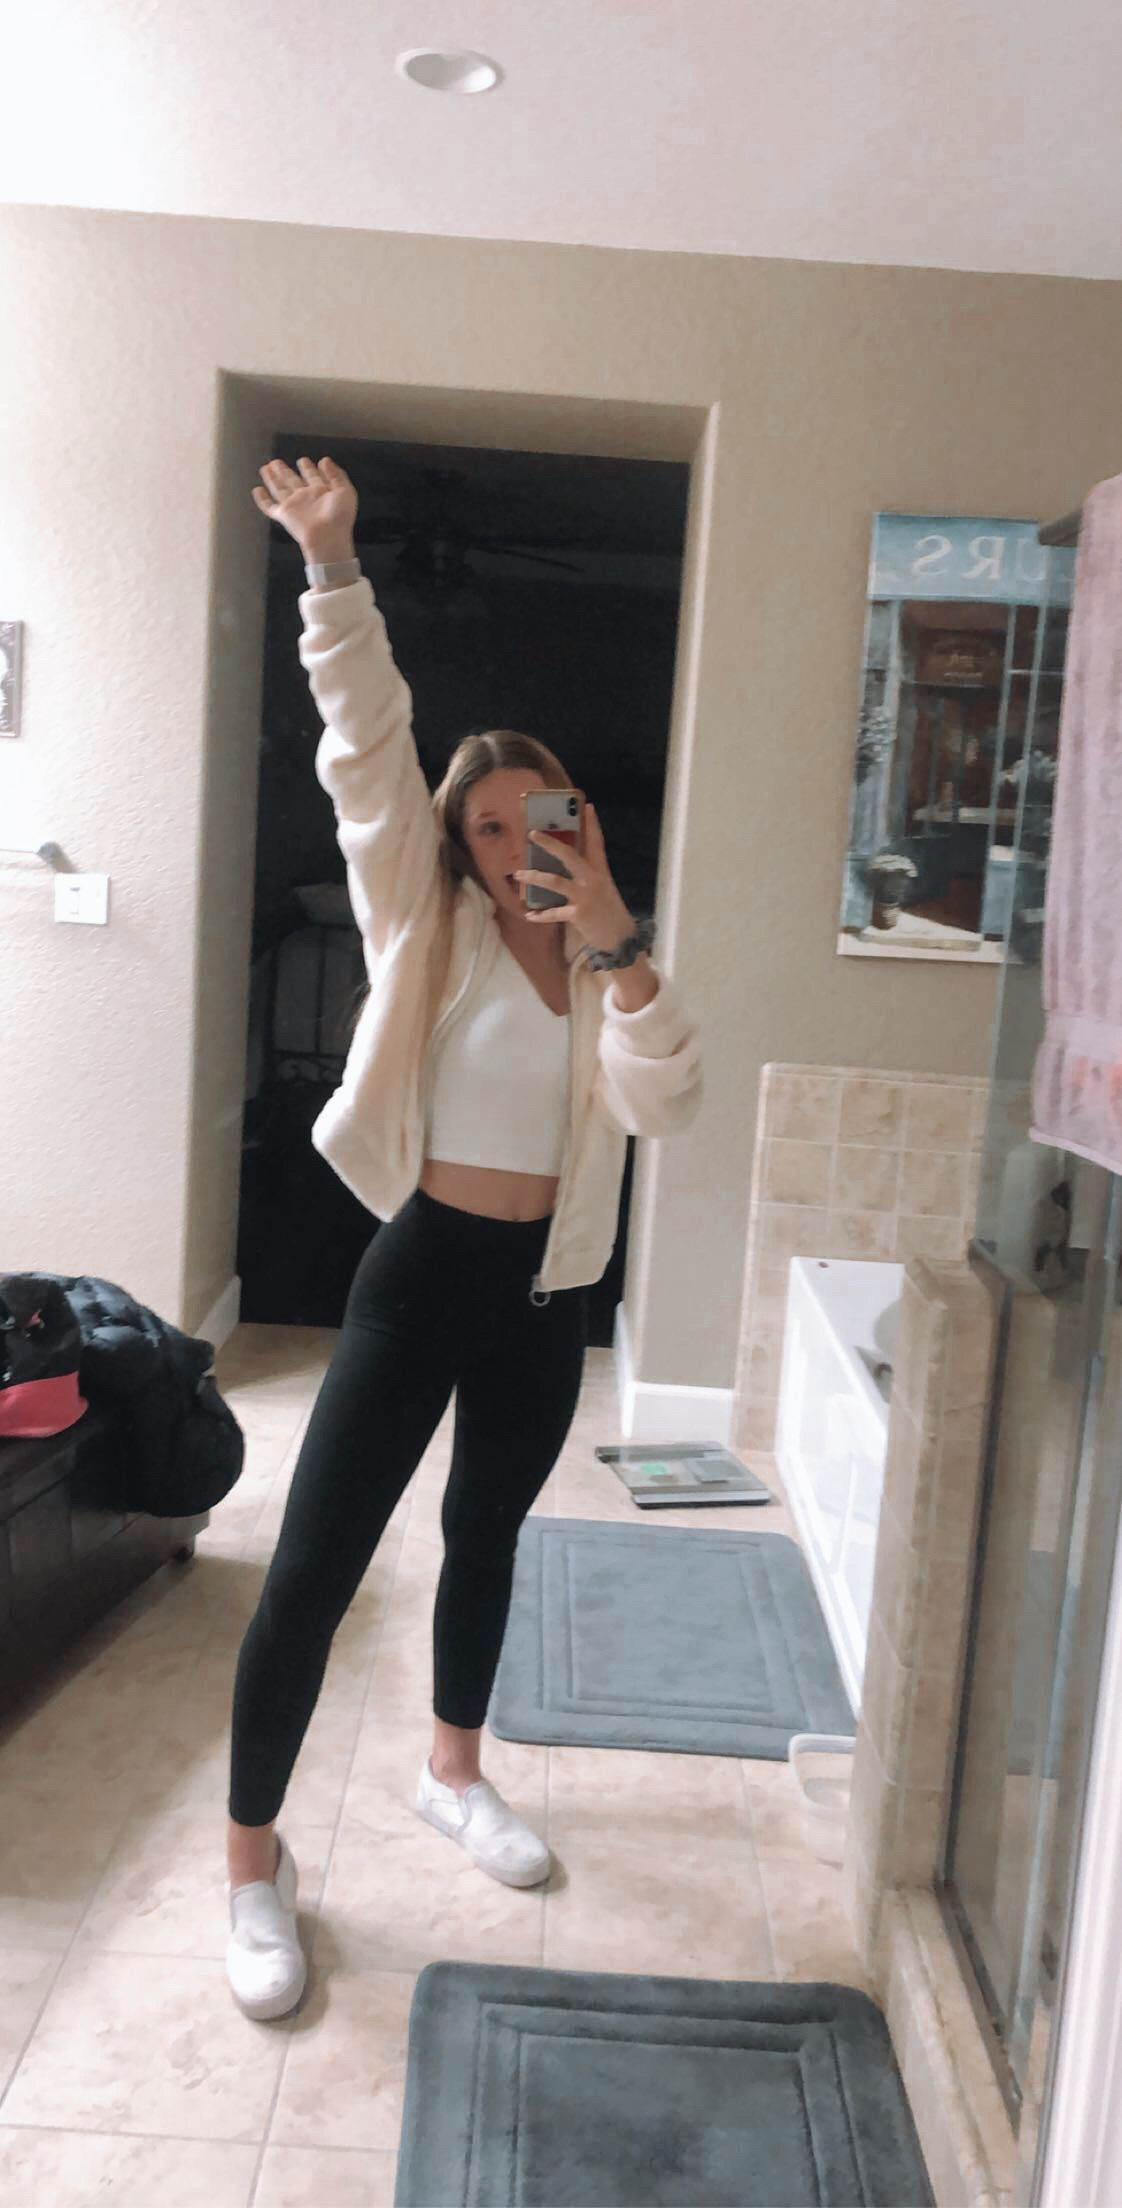 School Outfits With Leggings : school, outfits, leggings, Pinterest:, @elisecpp, Outfits, Leggings,, White, Outfits,